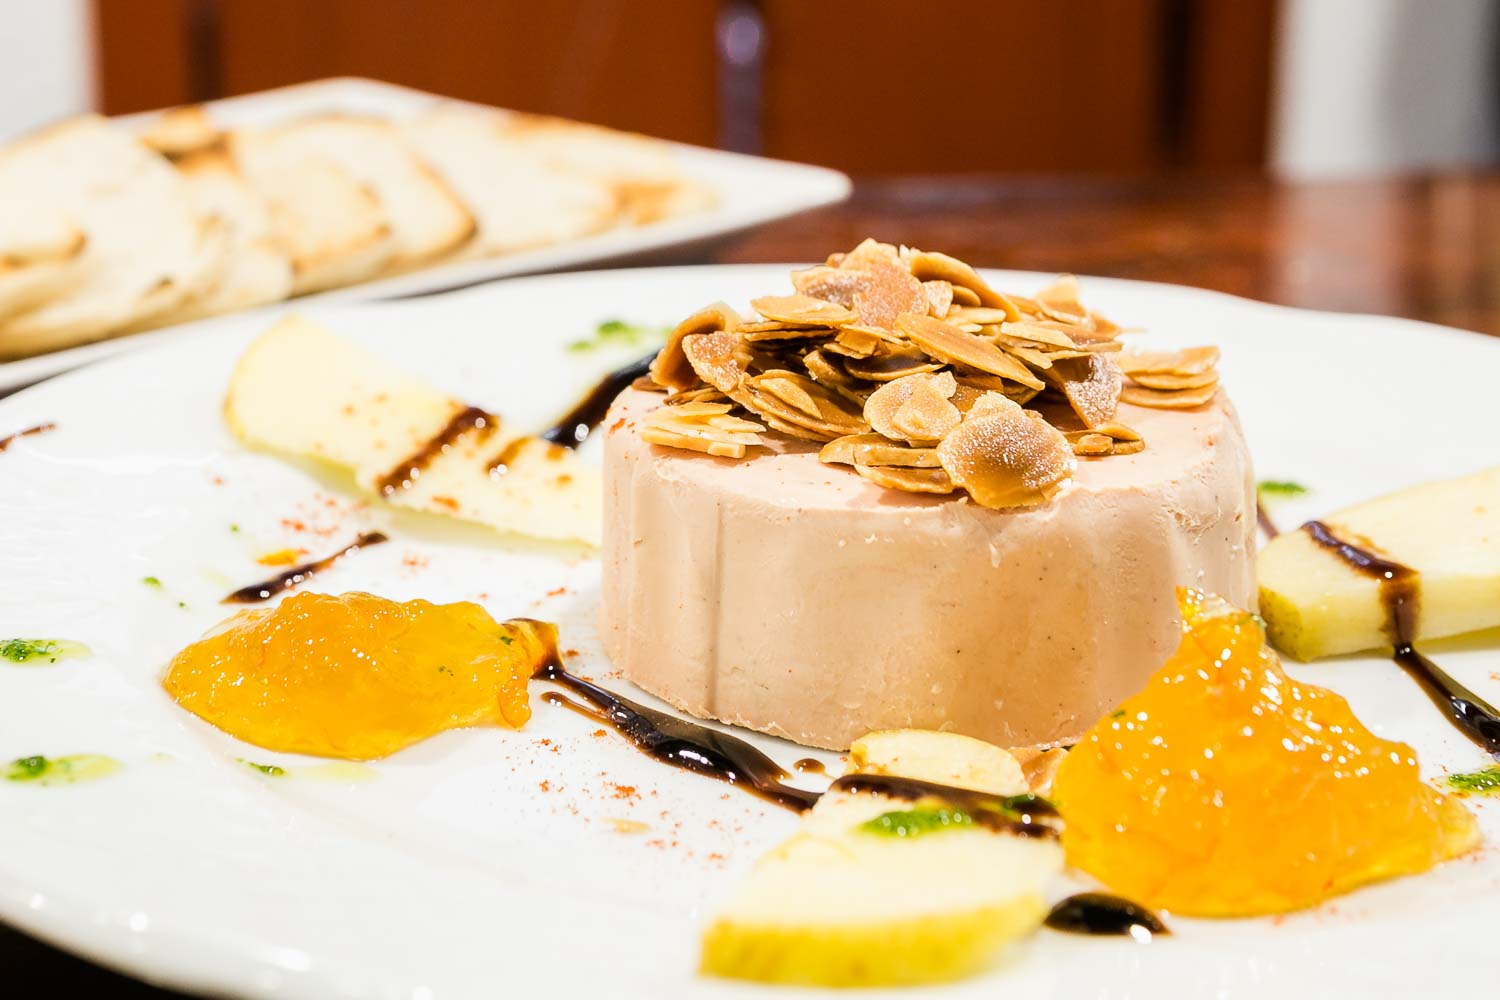 Duck pate with orange marmalade and almonds